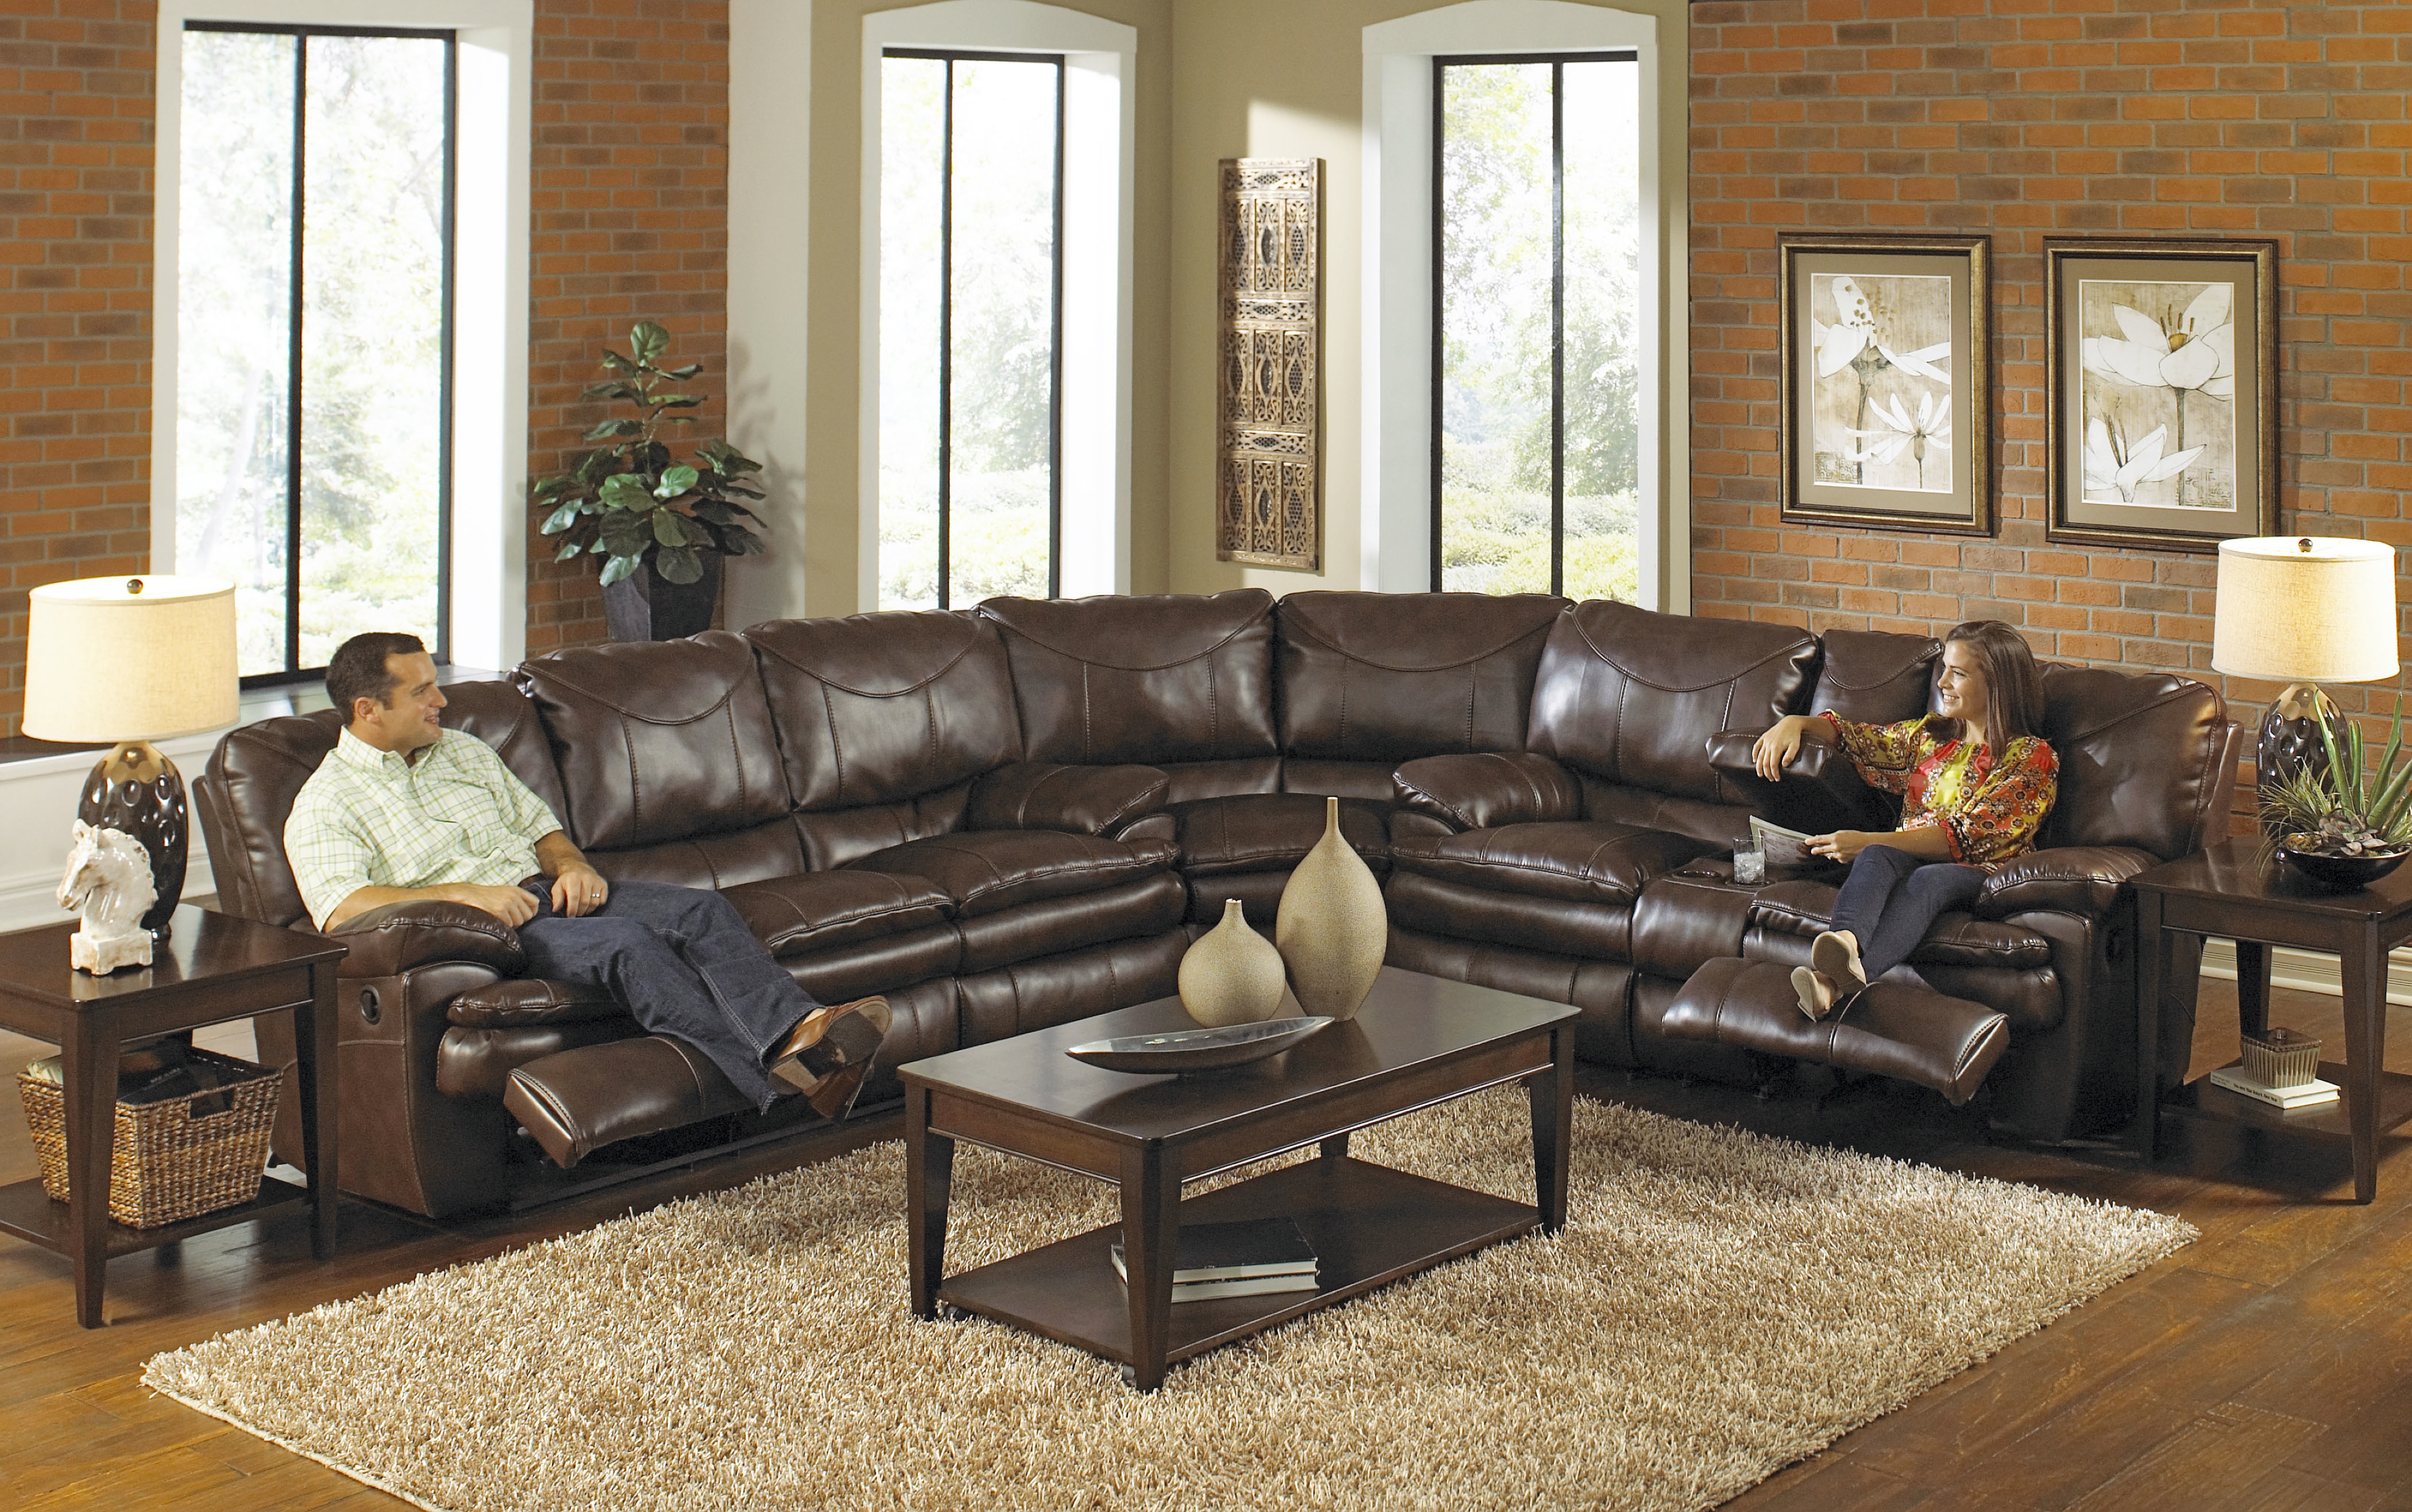 Big Sofa In A Small Room Buy Large Sectional Sofas Perfect For Your Large Living